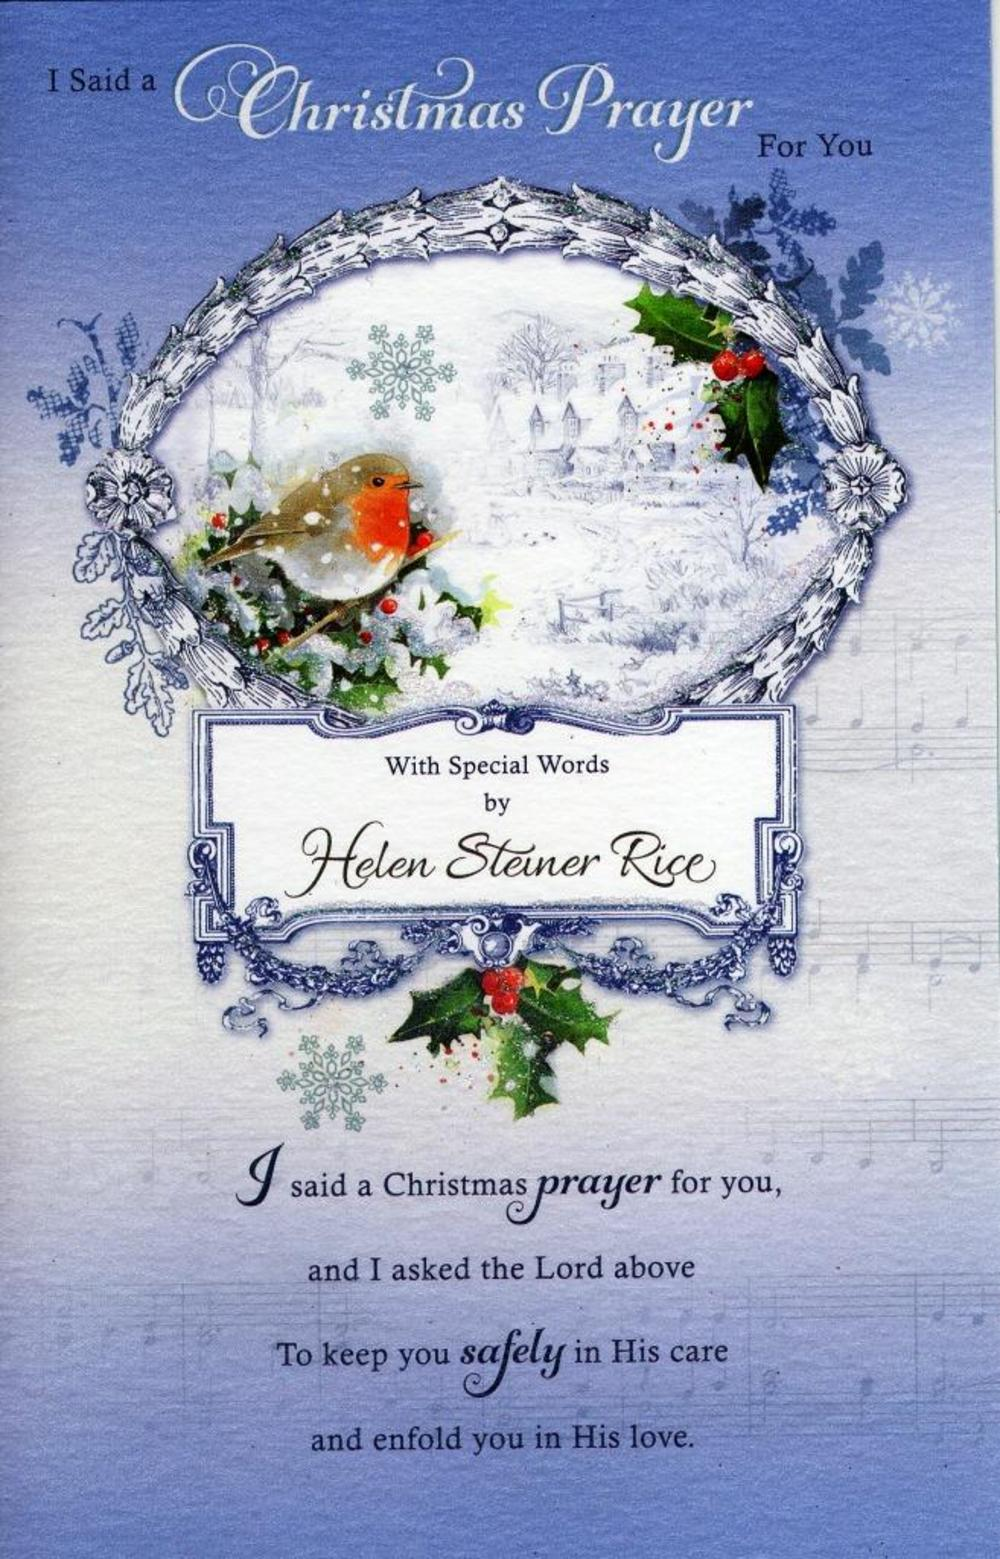 Helen steiner rice religious christmas greeting card cards love helen steiner rice religious christmas greeting card m4hsunfo